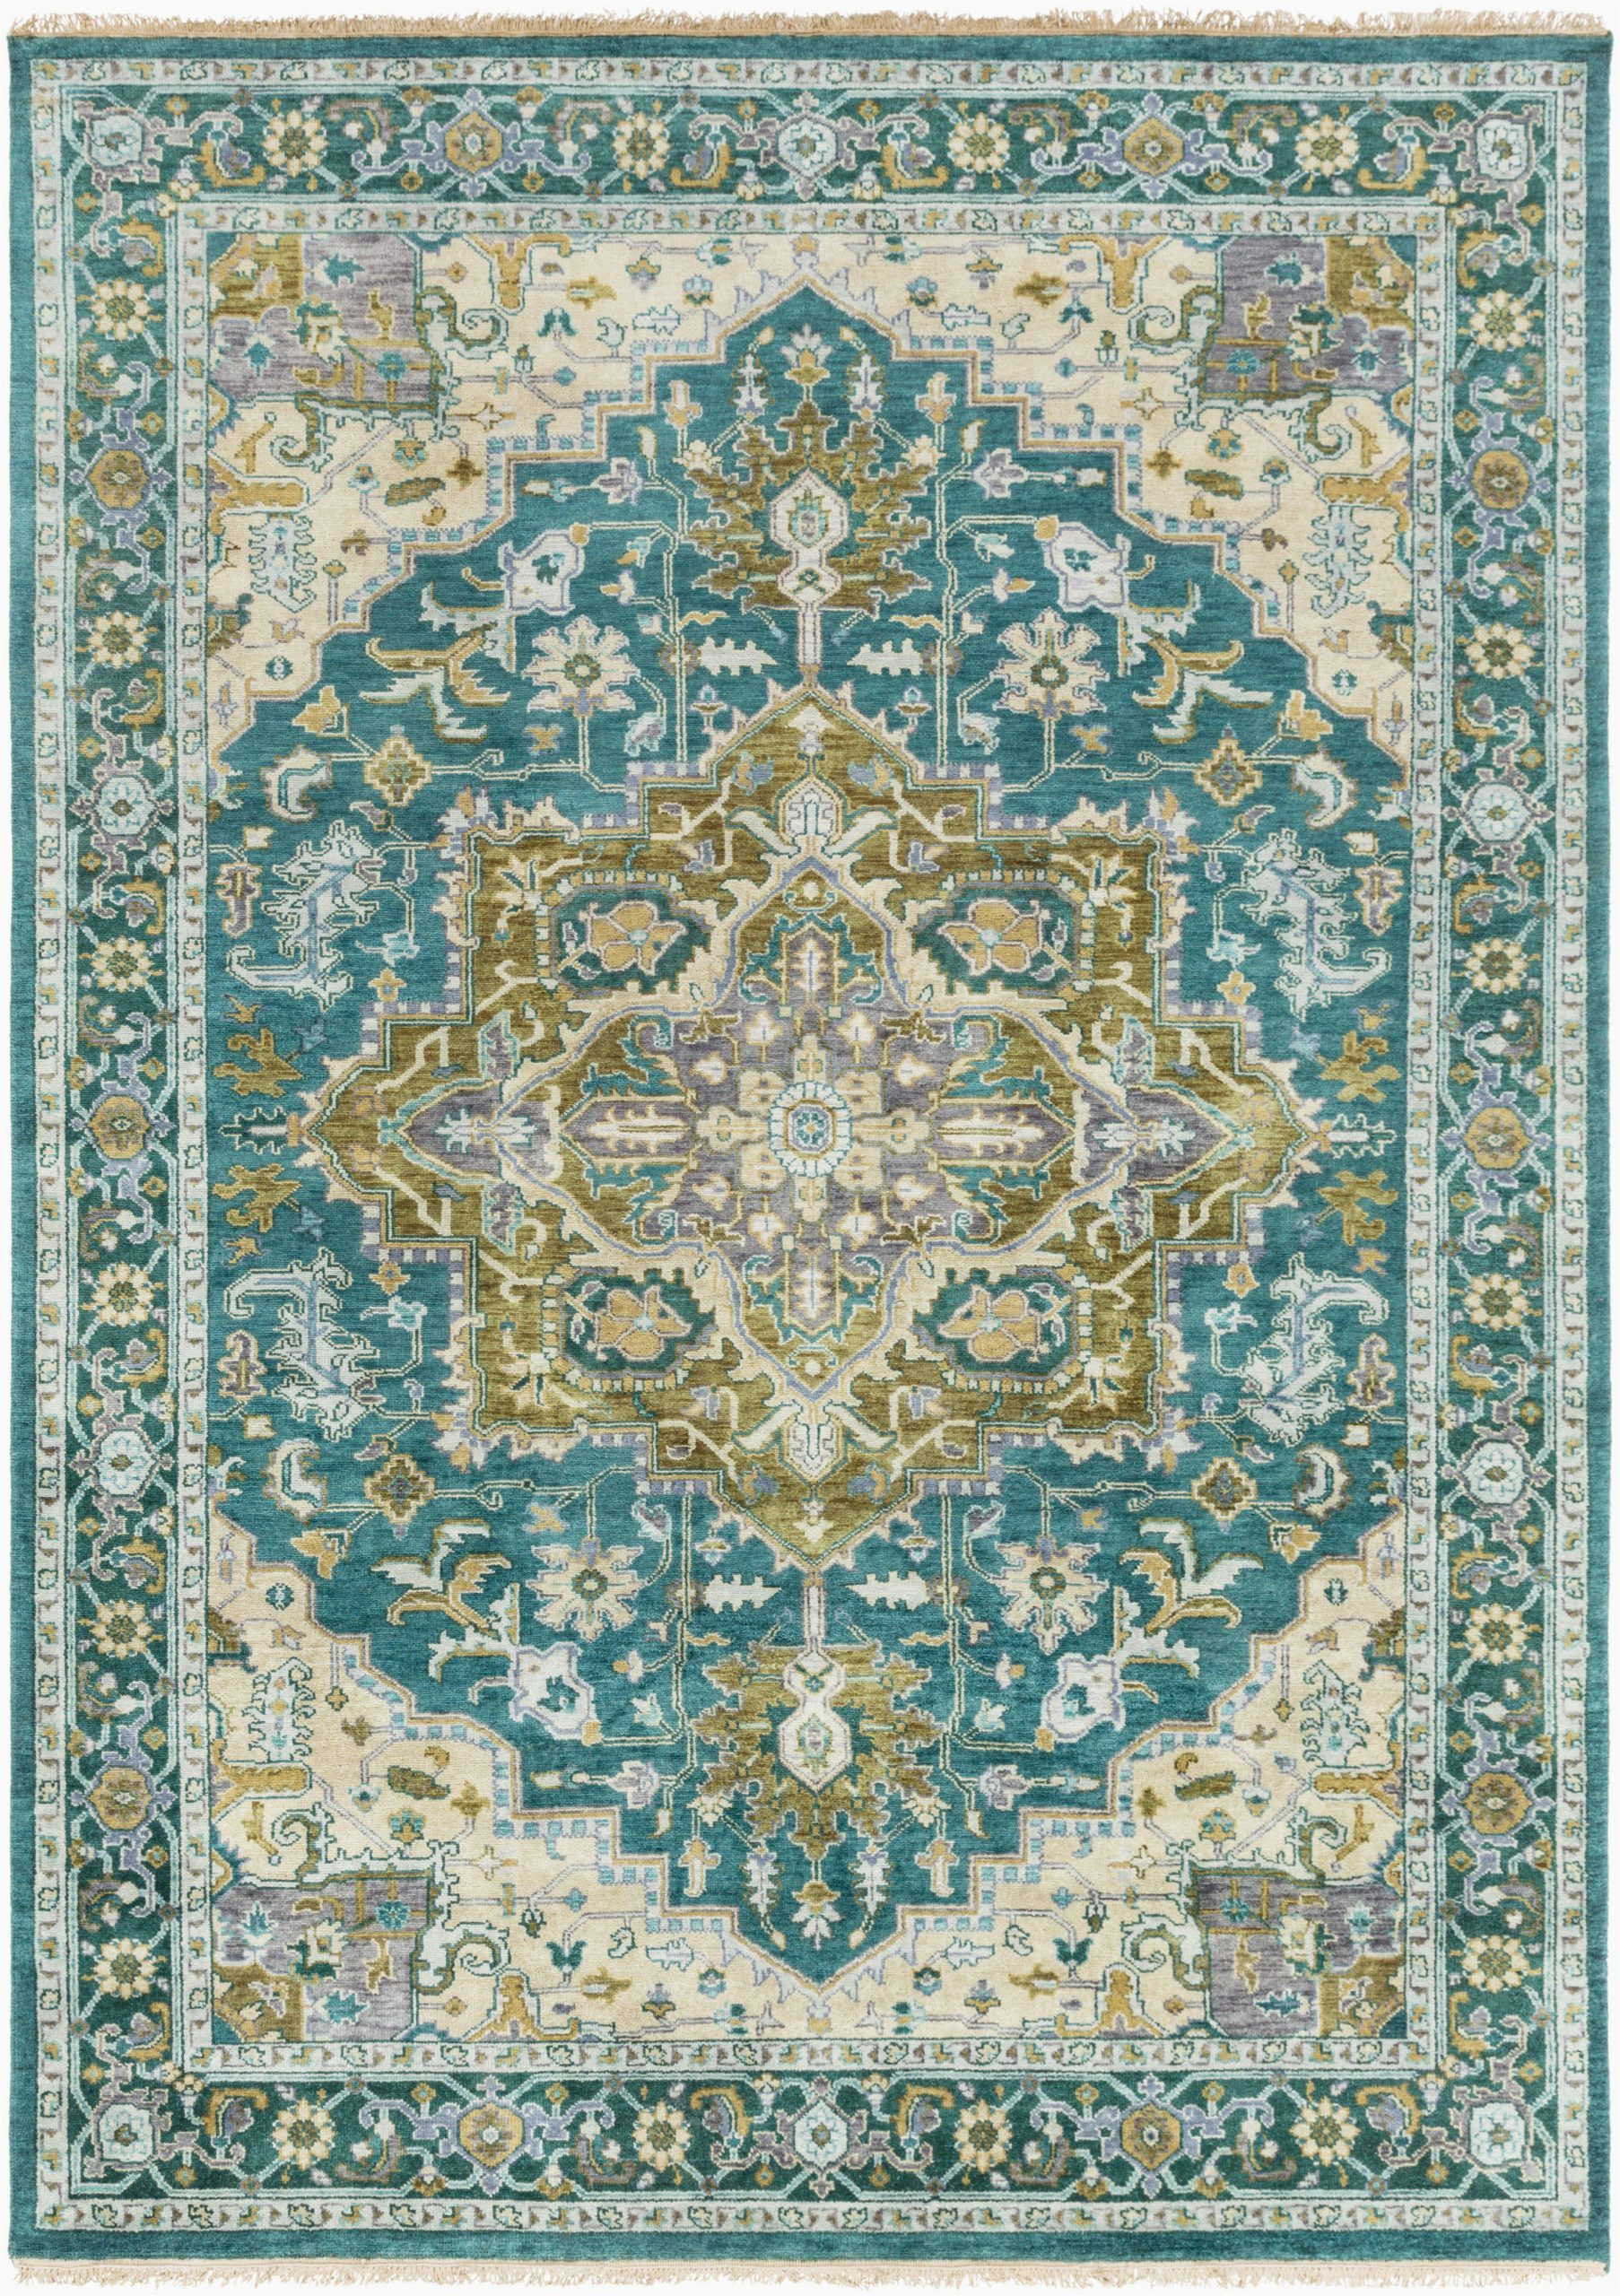 Area Rugs Teal and Brown Surya Zeus Zeu7822 Green Brown Classic area Rug In 2020